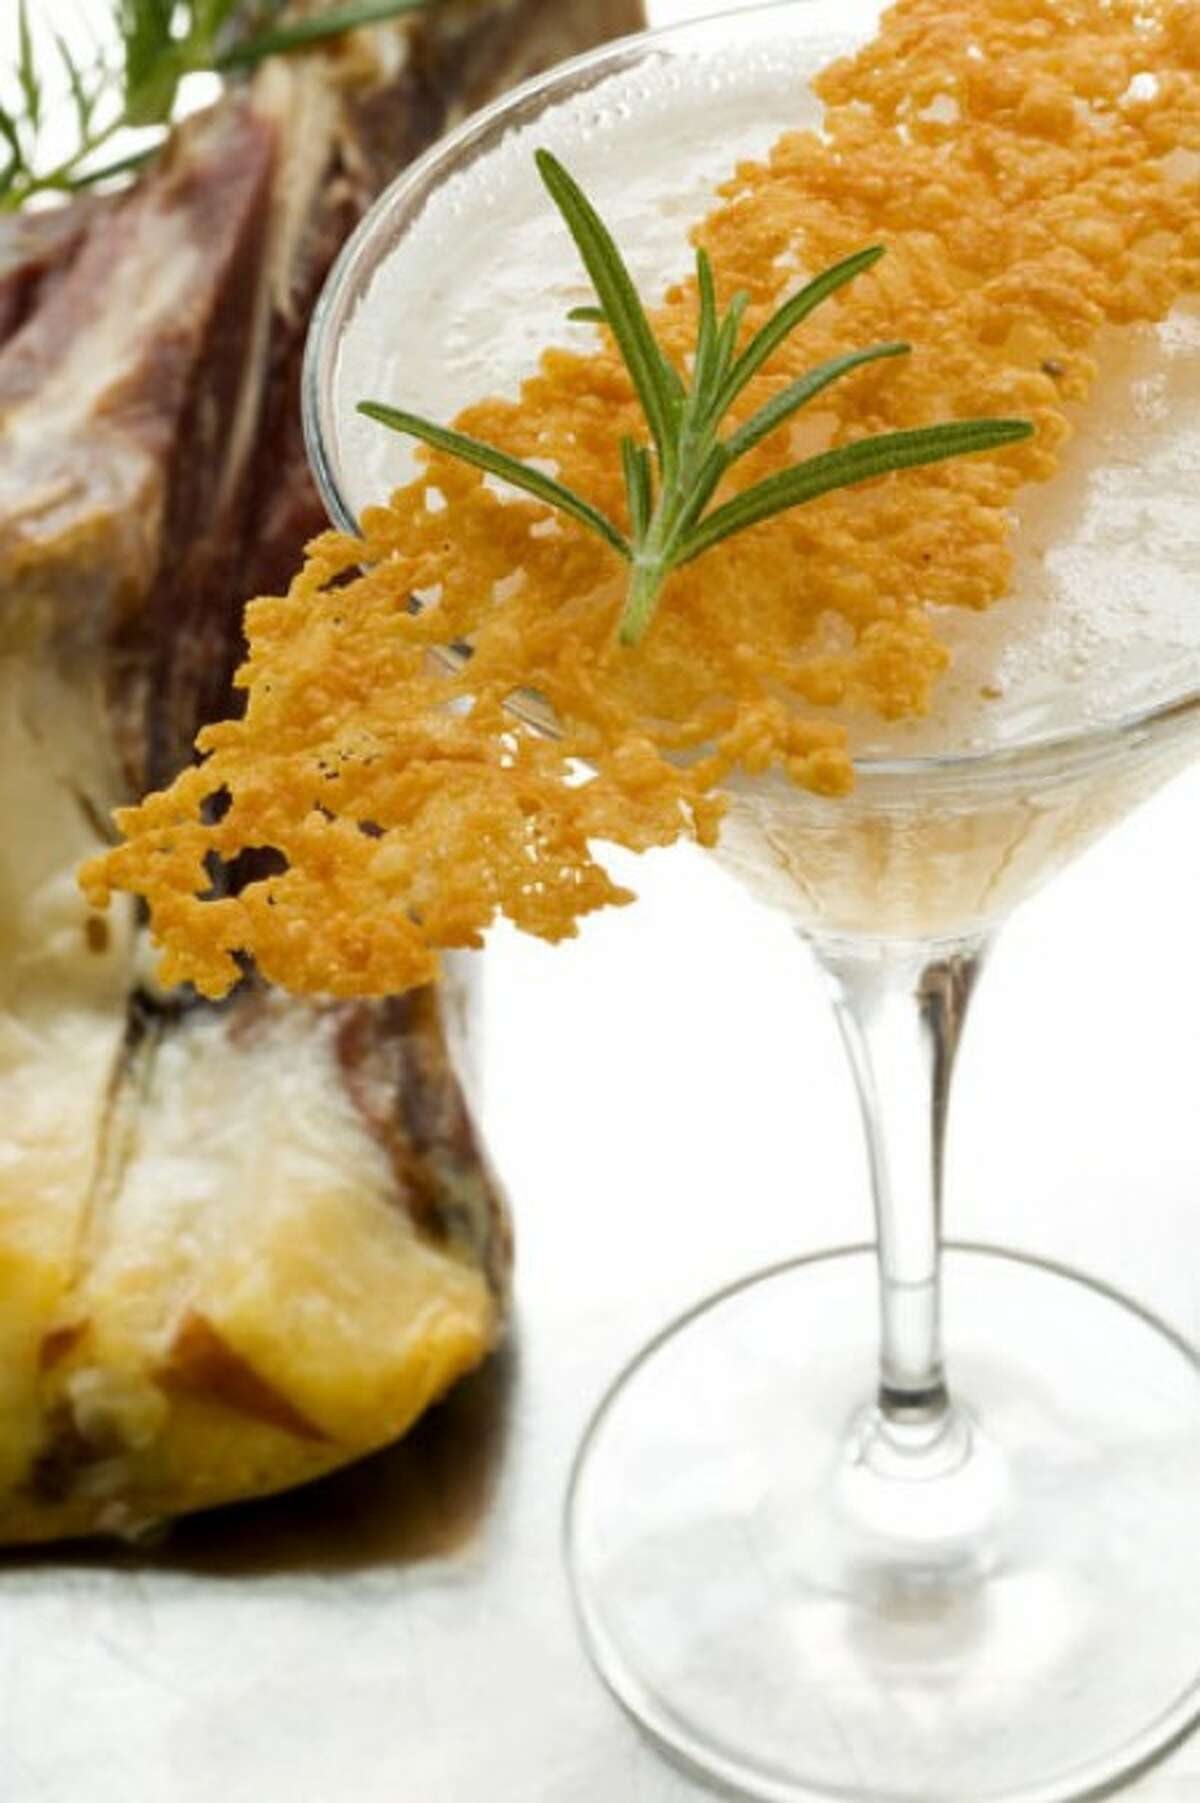 Adam Seger''s a ham-and-cheese cocktail is pictured. (AP photo)